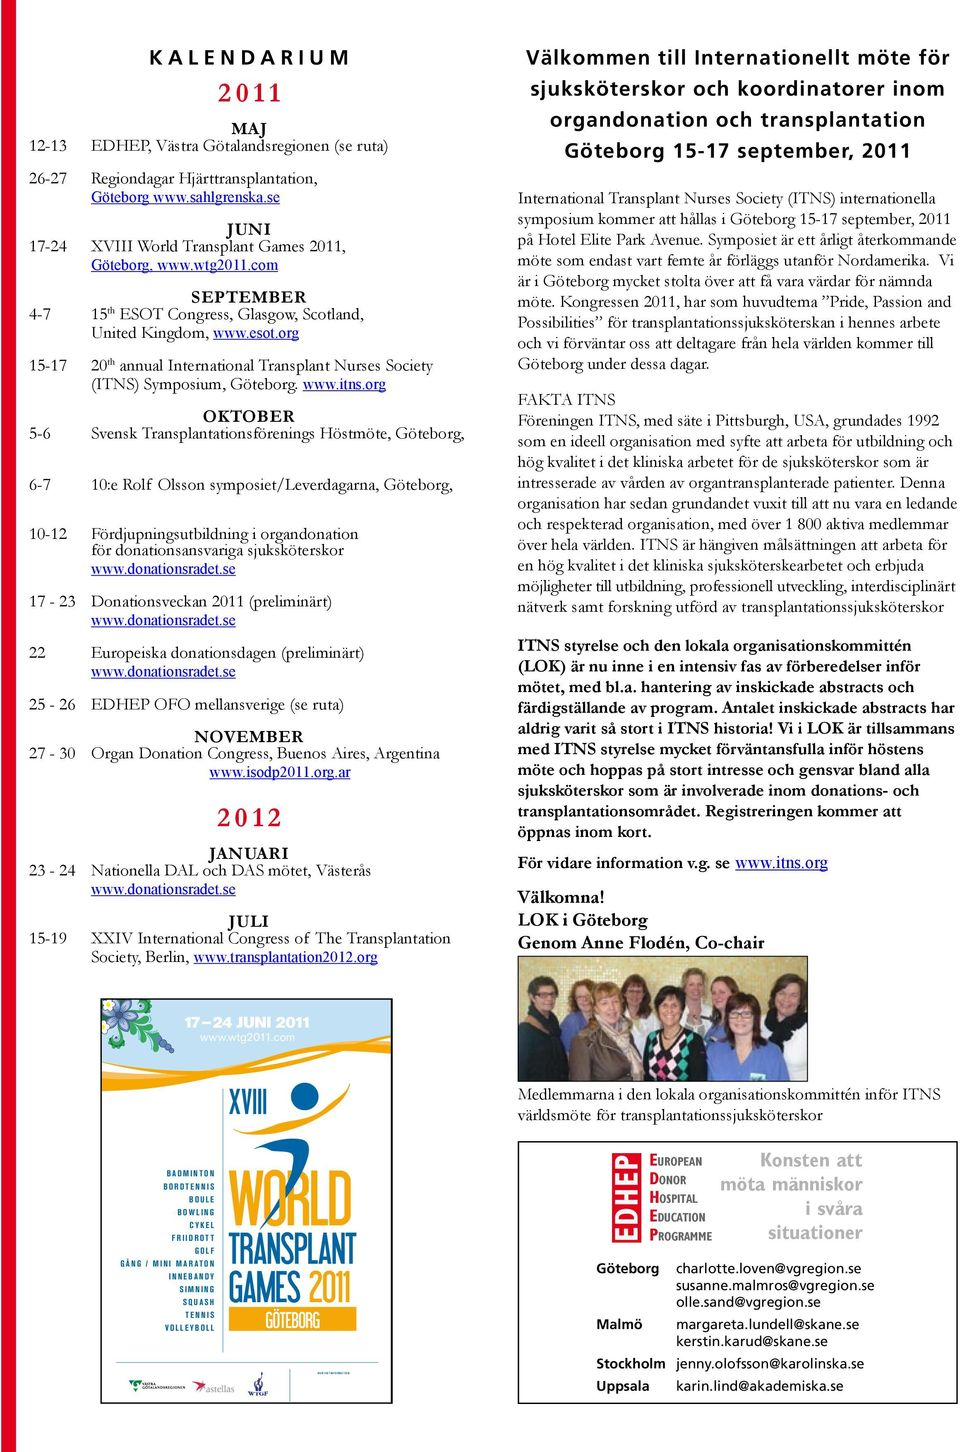 org 15-17 20 th annual International Transplant Nurses Society (ITNS) Symposium, Göteborg. www.itns.